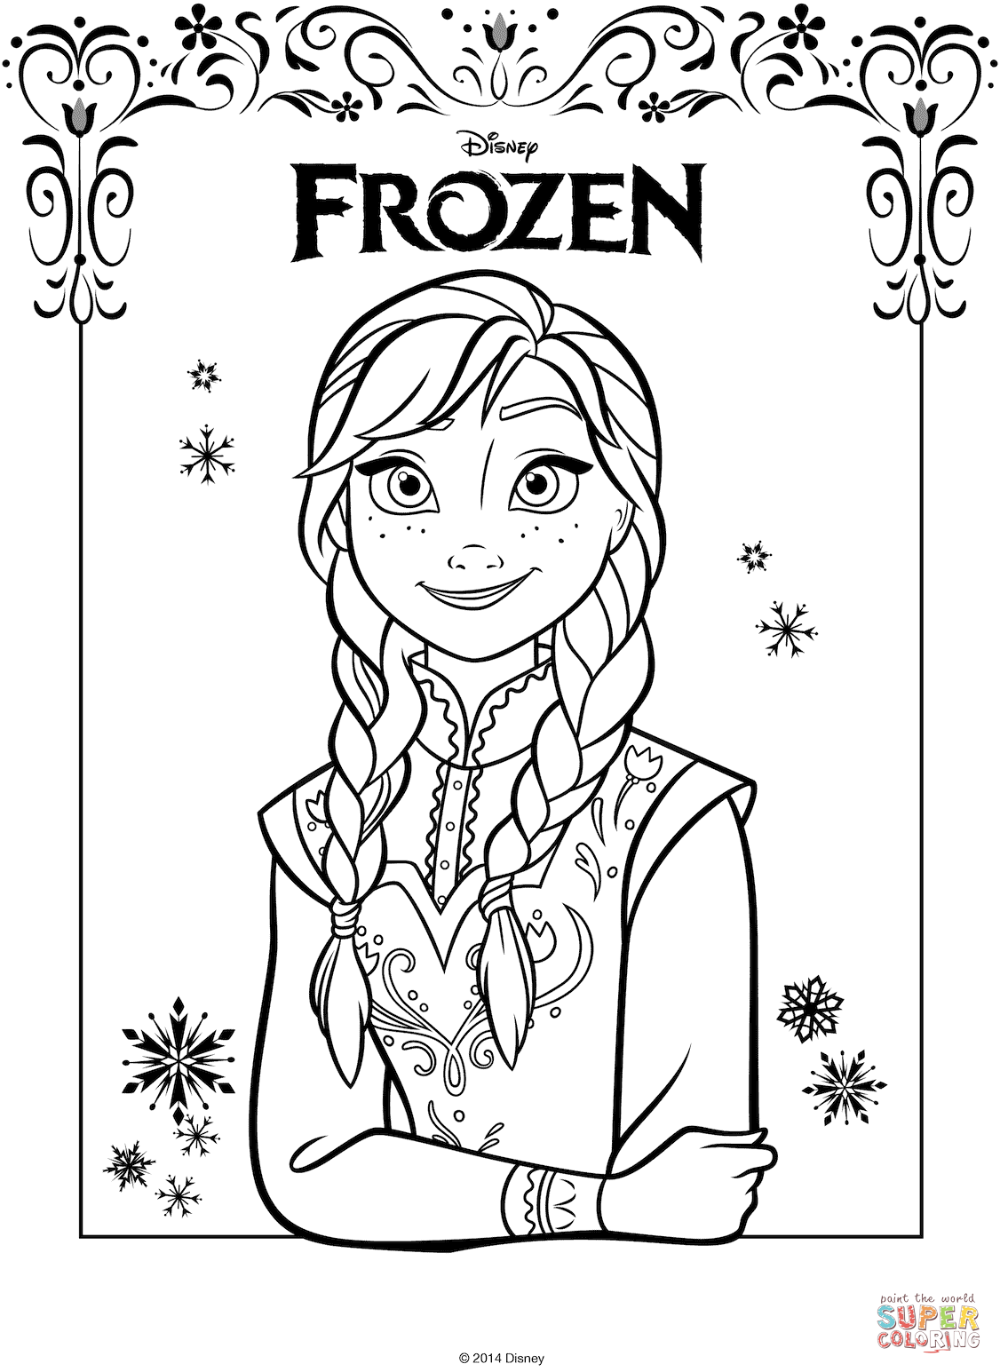 Anna From The Frozen Movie Coloring Page Free Printable Coloring Pages Frozen Coloring Pages Frozen Coloring Elsa Coloring Pages